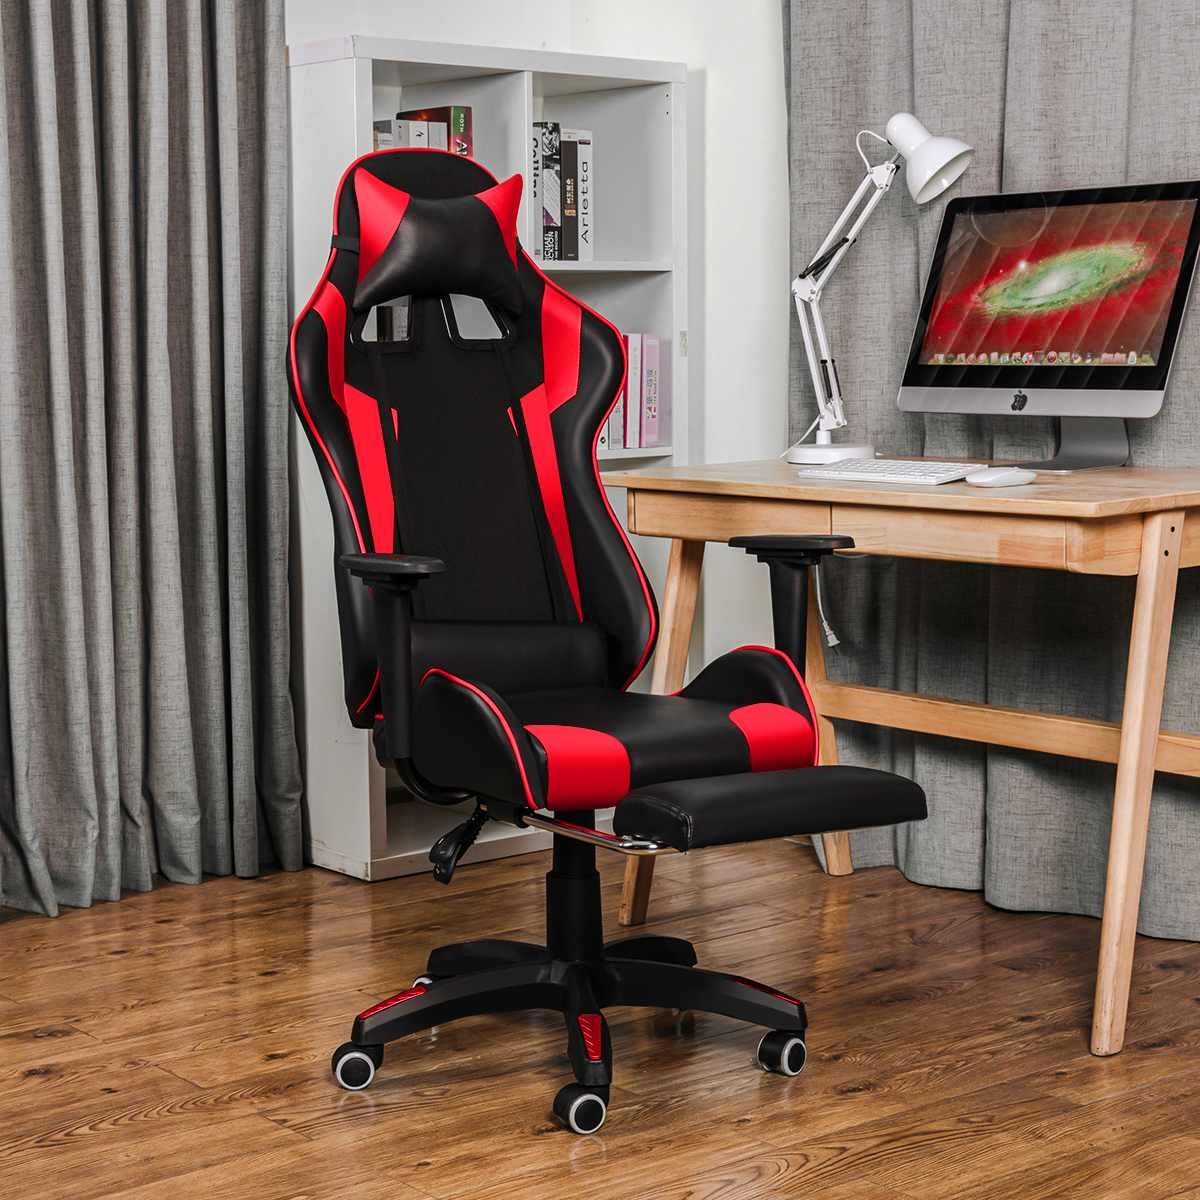 H8a84129a6beb45fb9d7dde3a0dc2bfcdN - 155° Gaming Chairs with Footrest Ergonomic Office Chair Adjustable Swivel Leather High Back Computer Desk Chair with Headrest